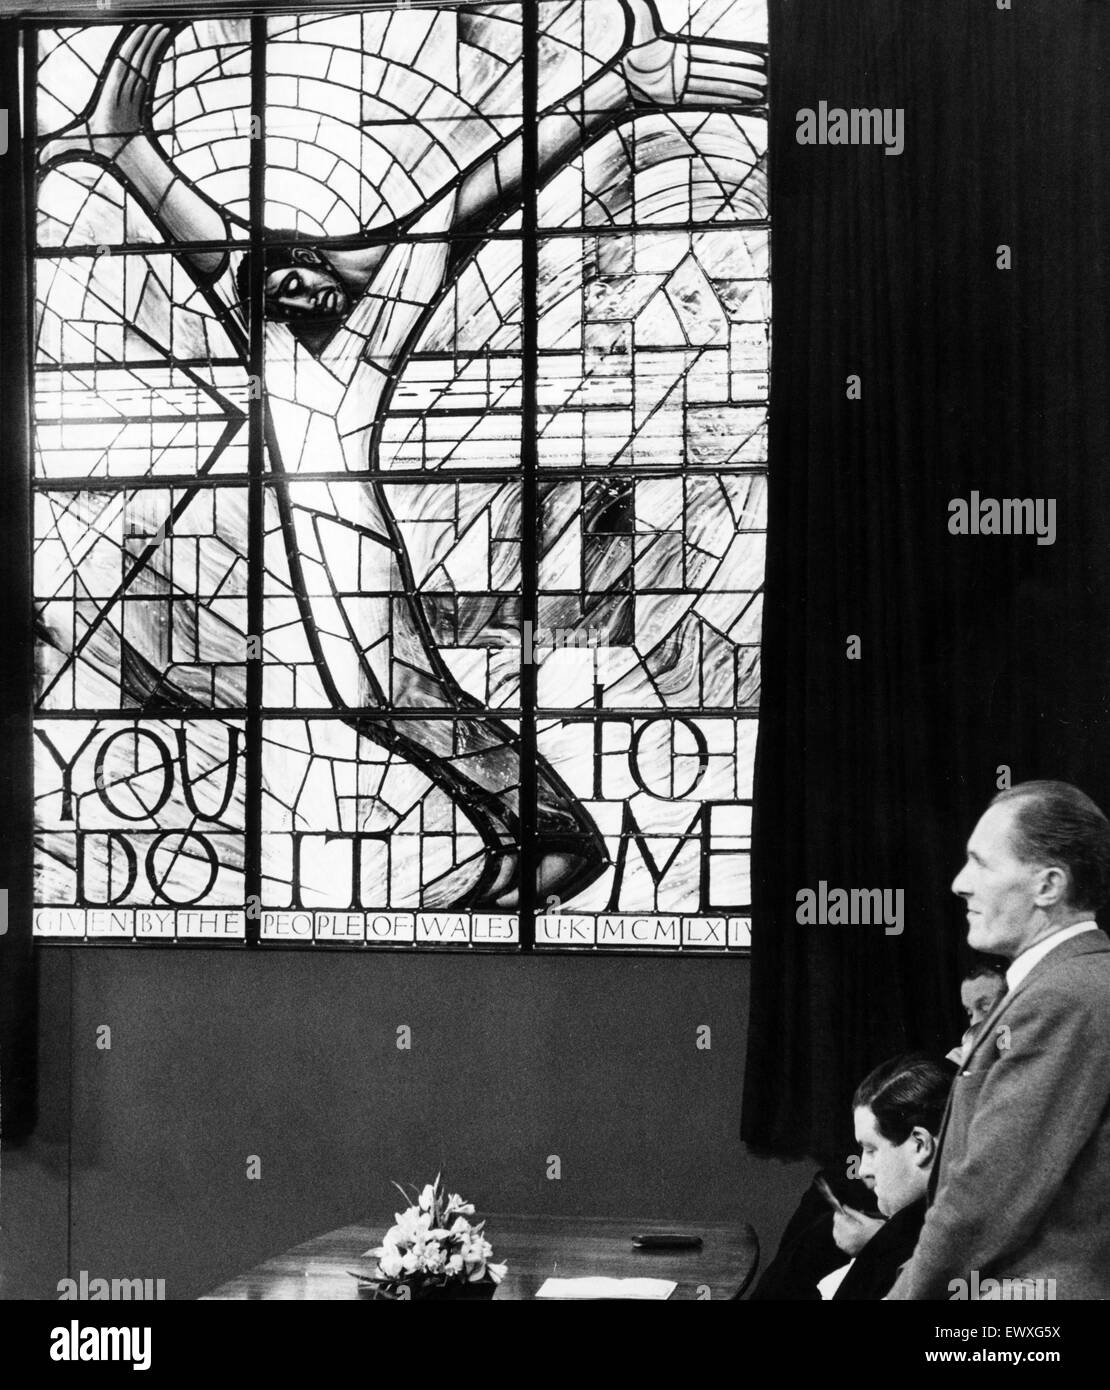 The Wales Window for Alabama, Unveiling Ceremony, Thomson House, Cardiff, Wales, Thursday 4th February 1965. Unveiled - Stock Image